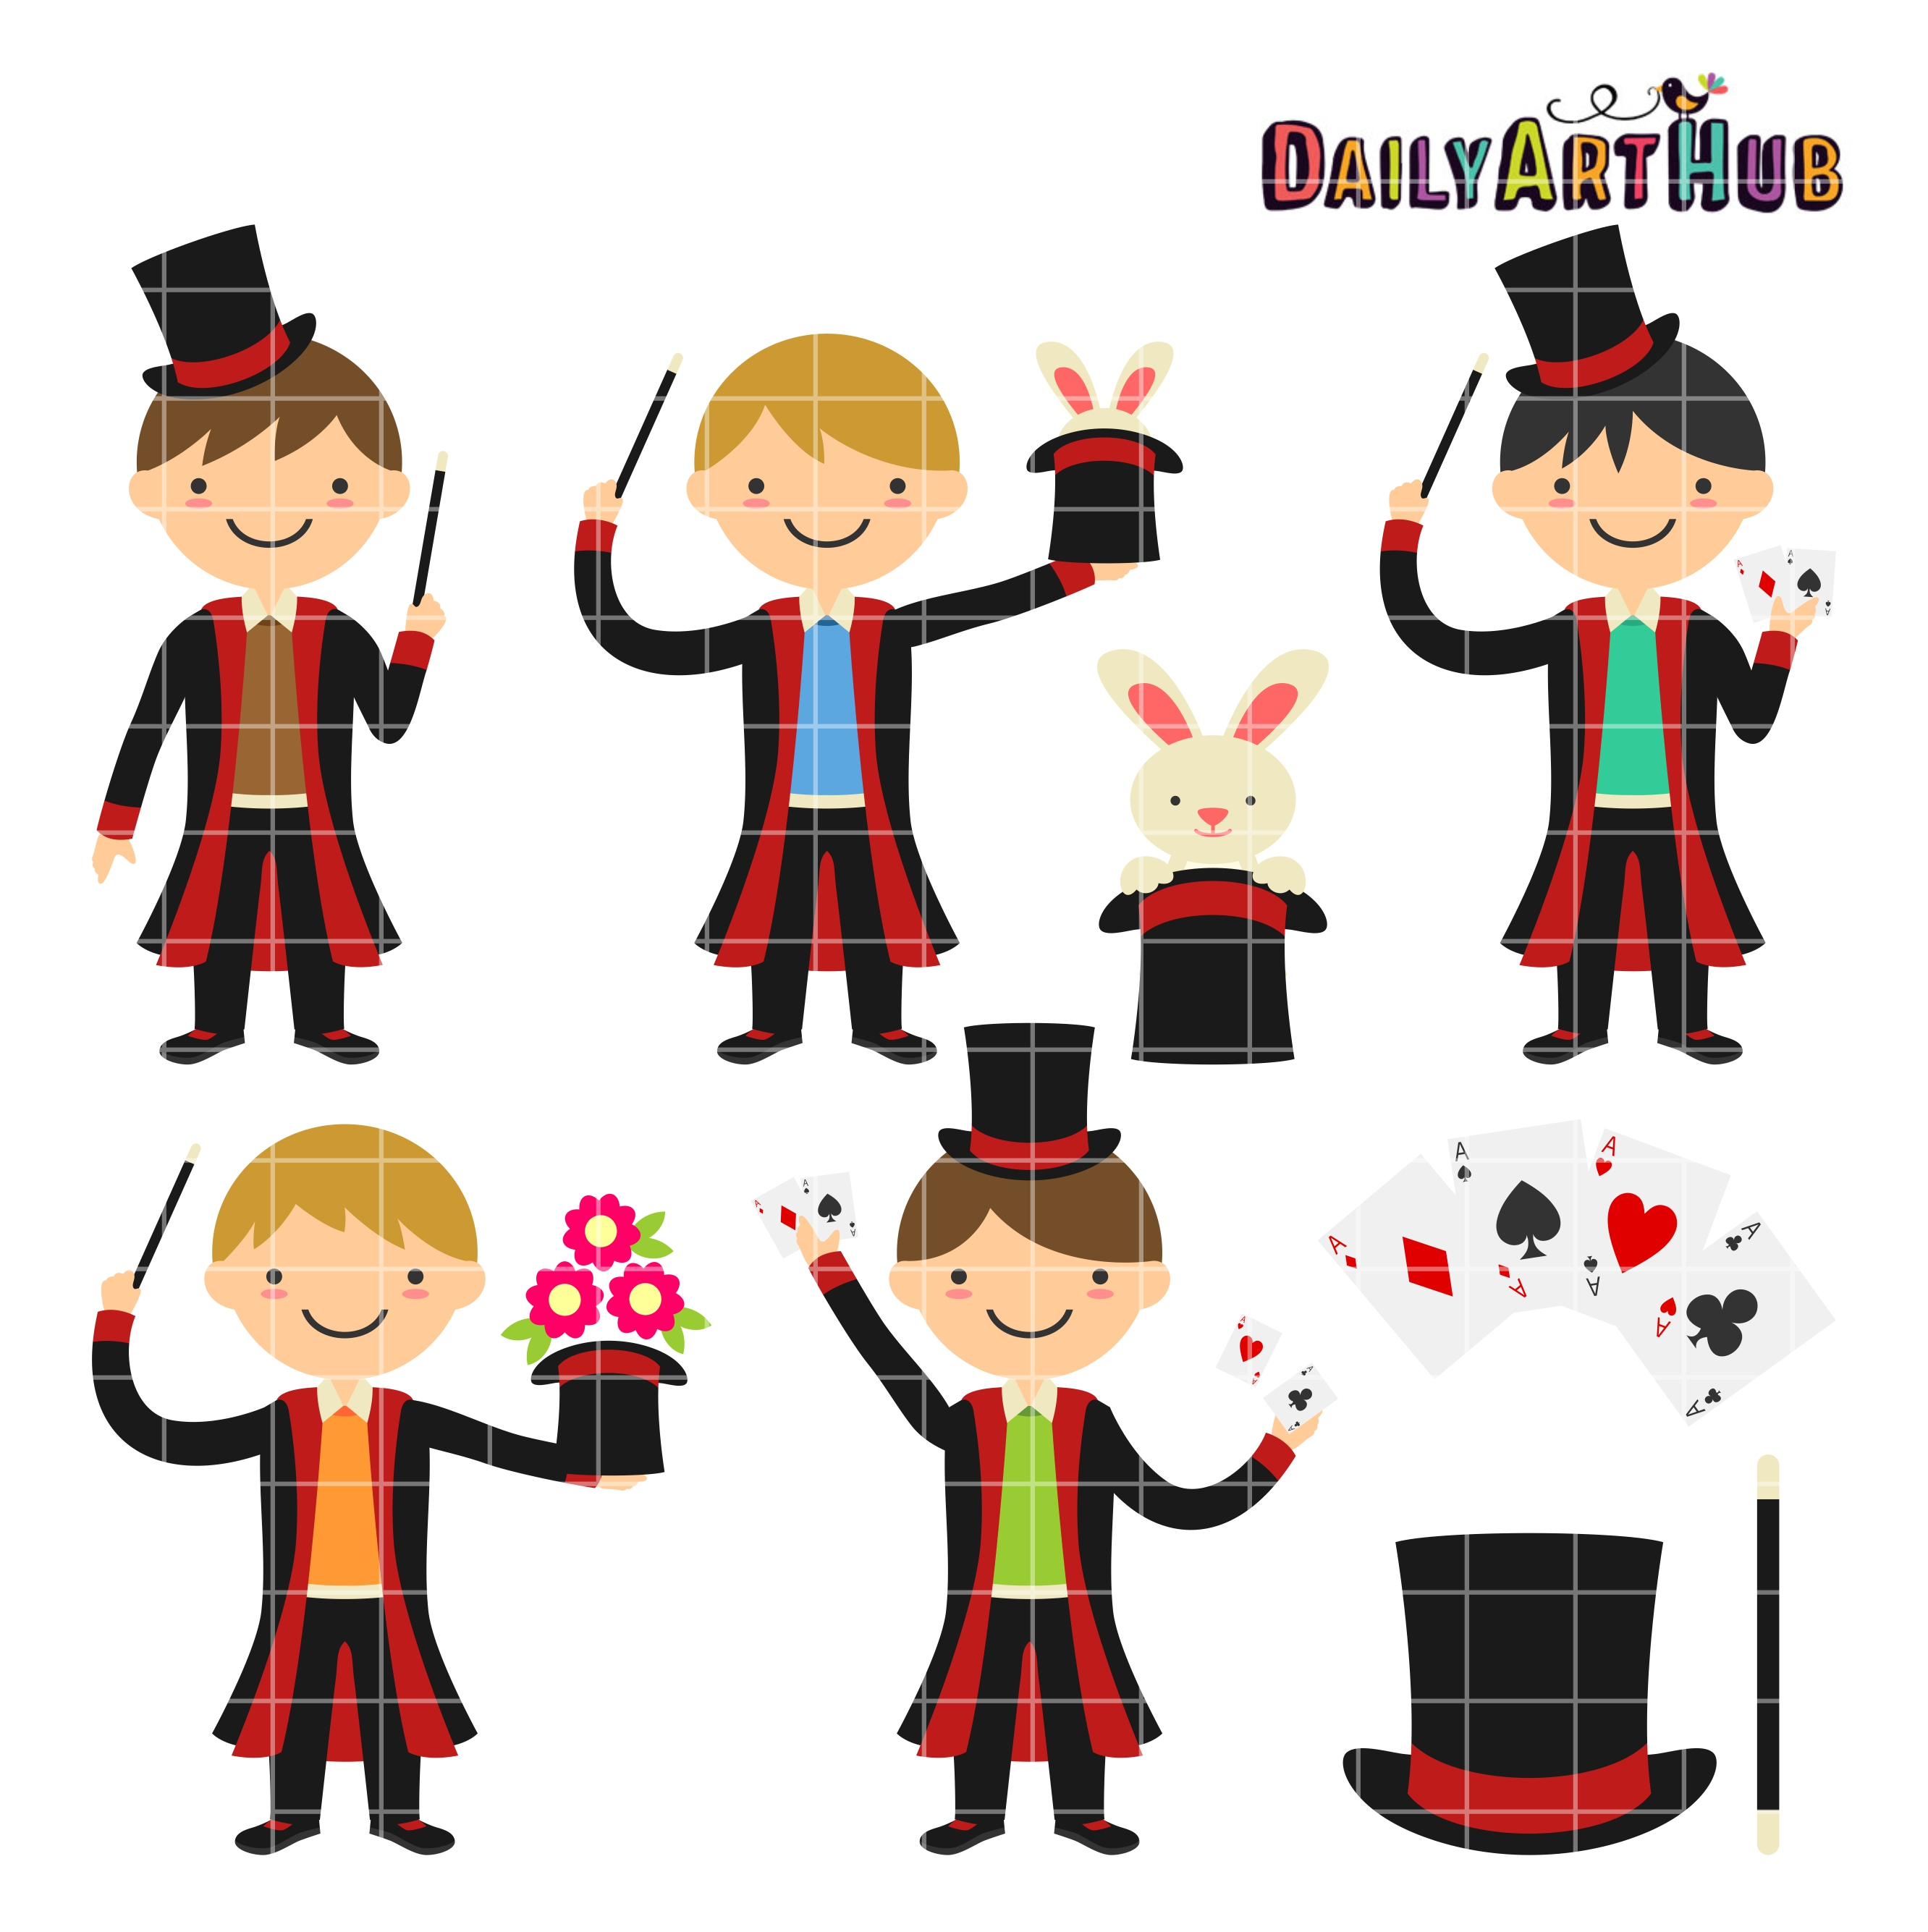 2664x2670 Magician Boys Clip Art Set Daily Art Hub Free Clip Art Everyday